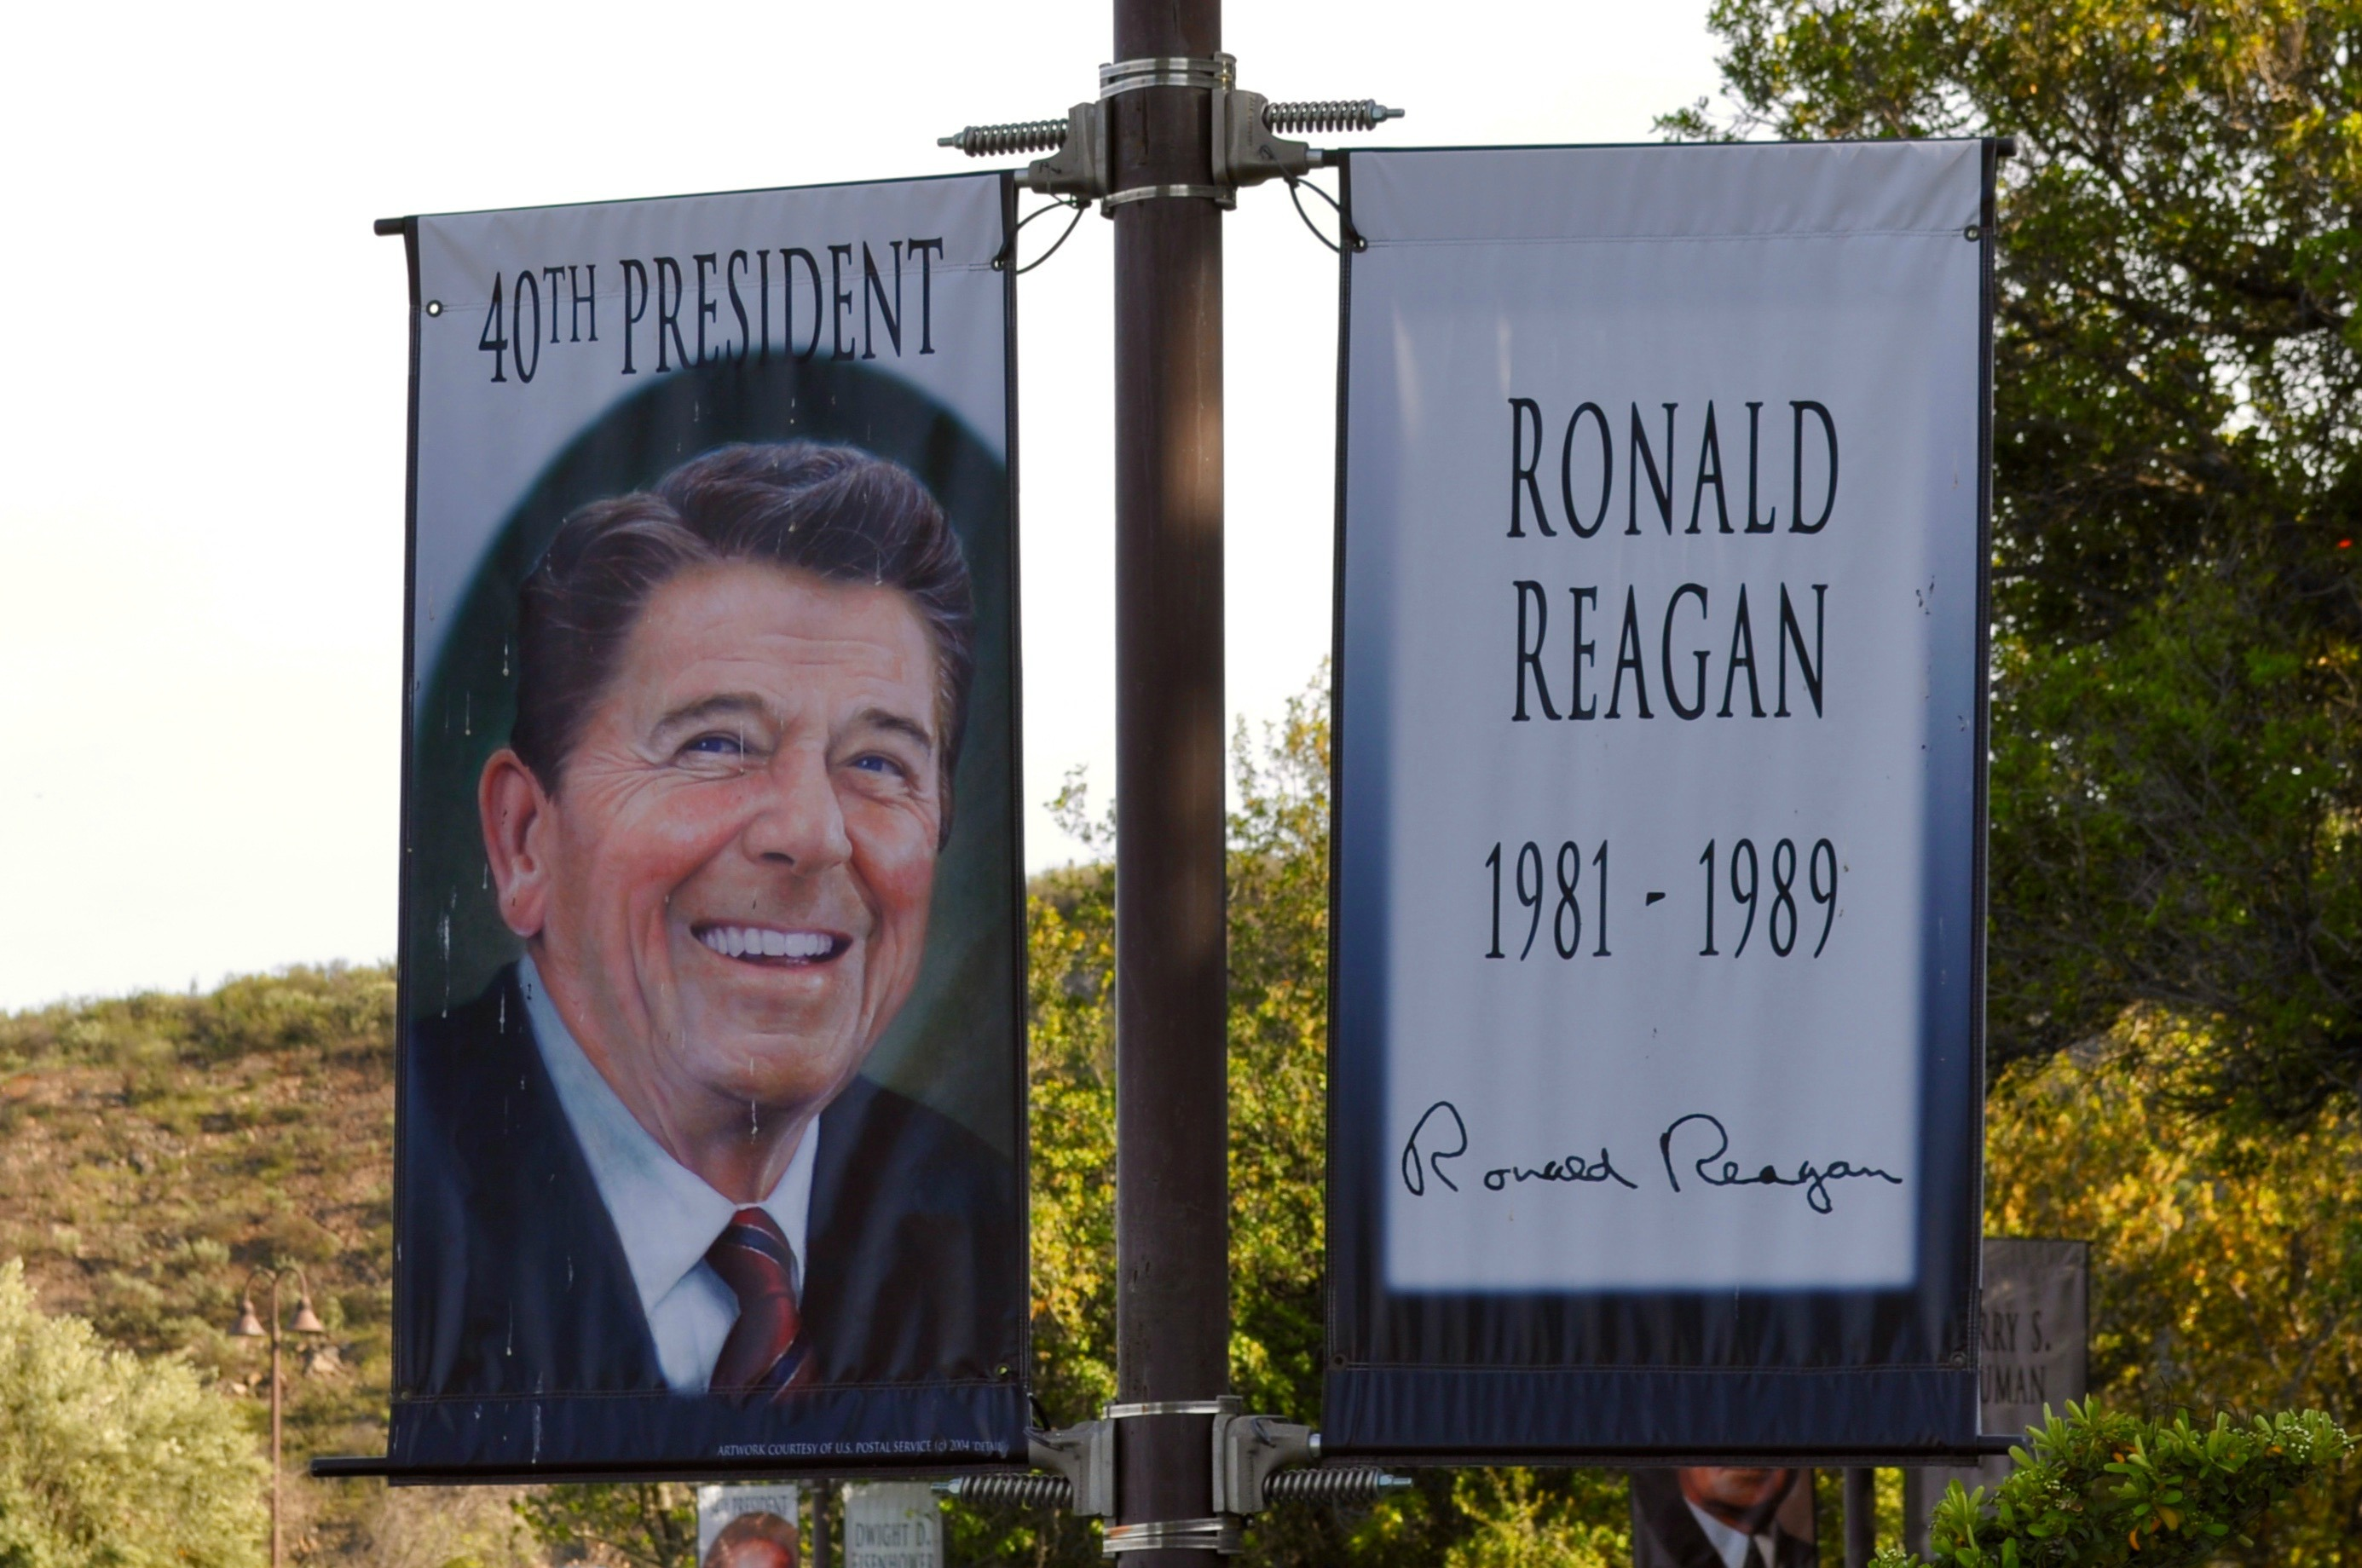 Ronald Reagan Library Banners - Simple Sojourns